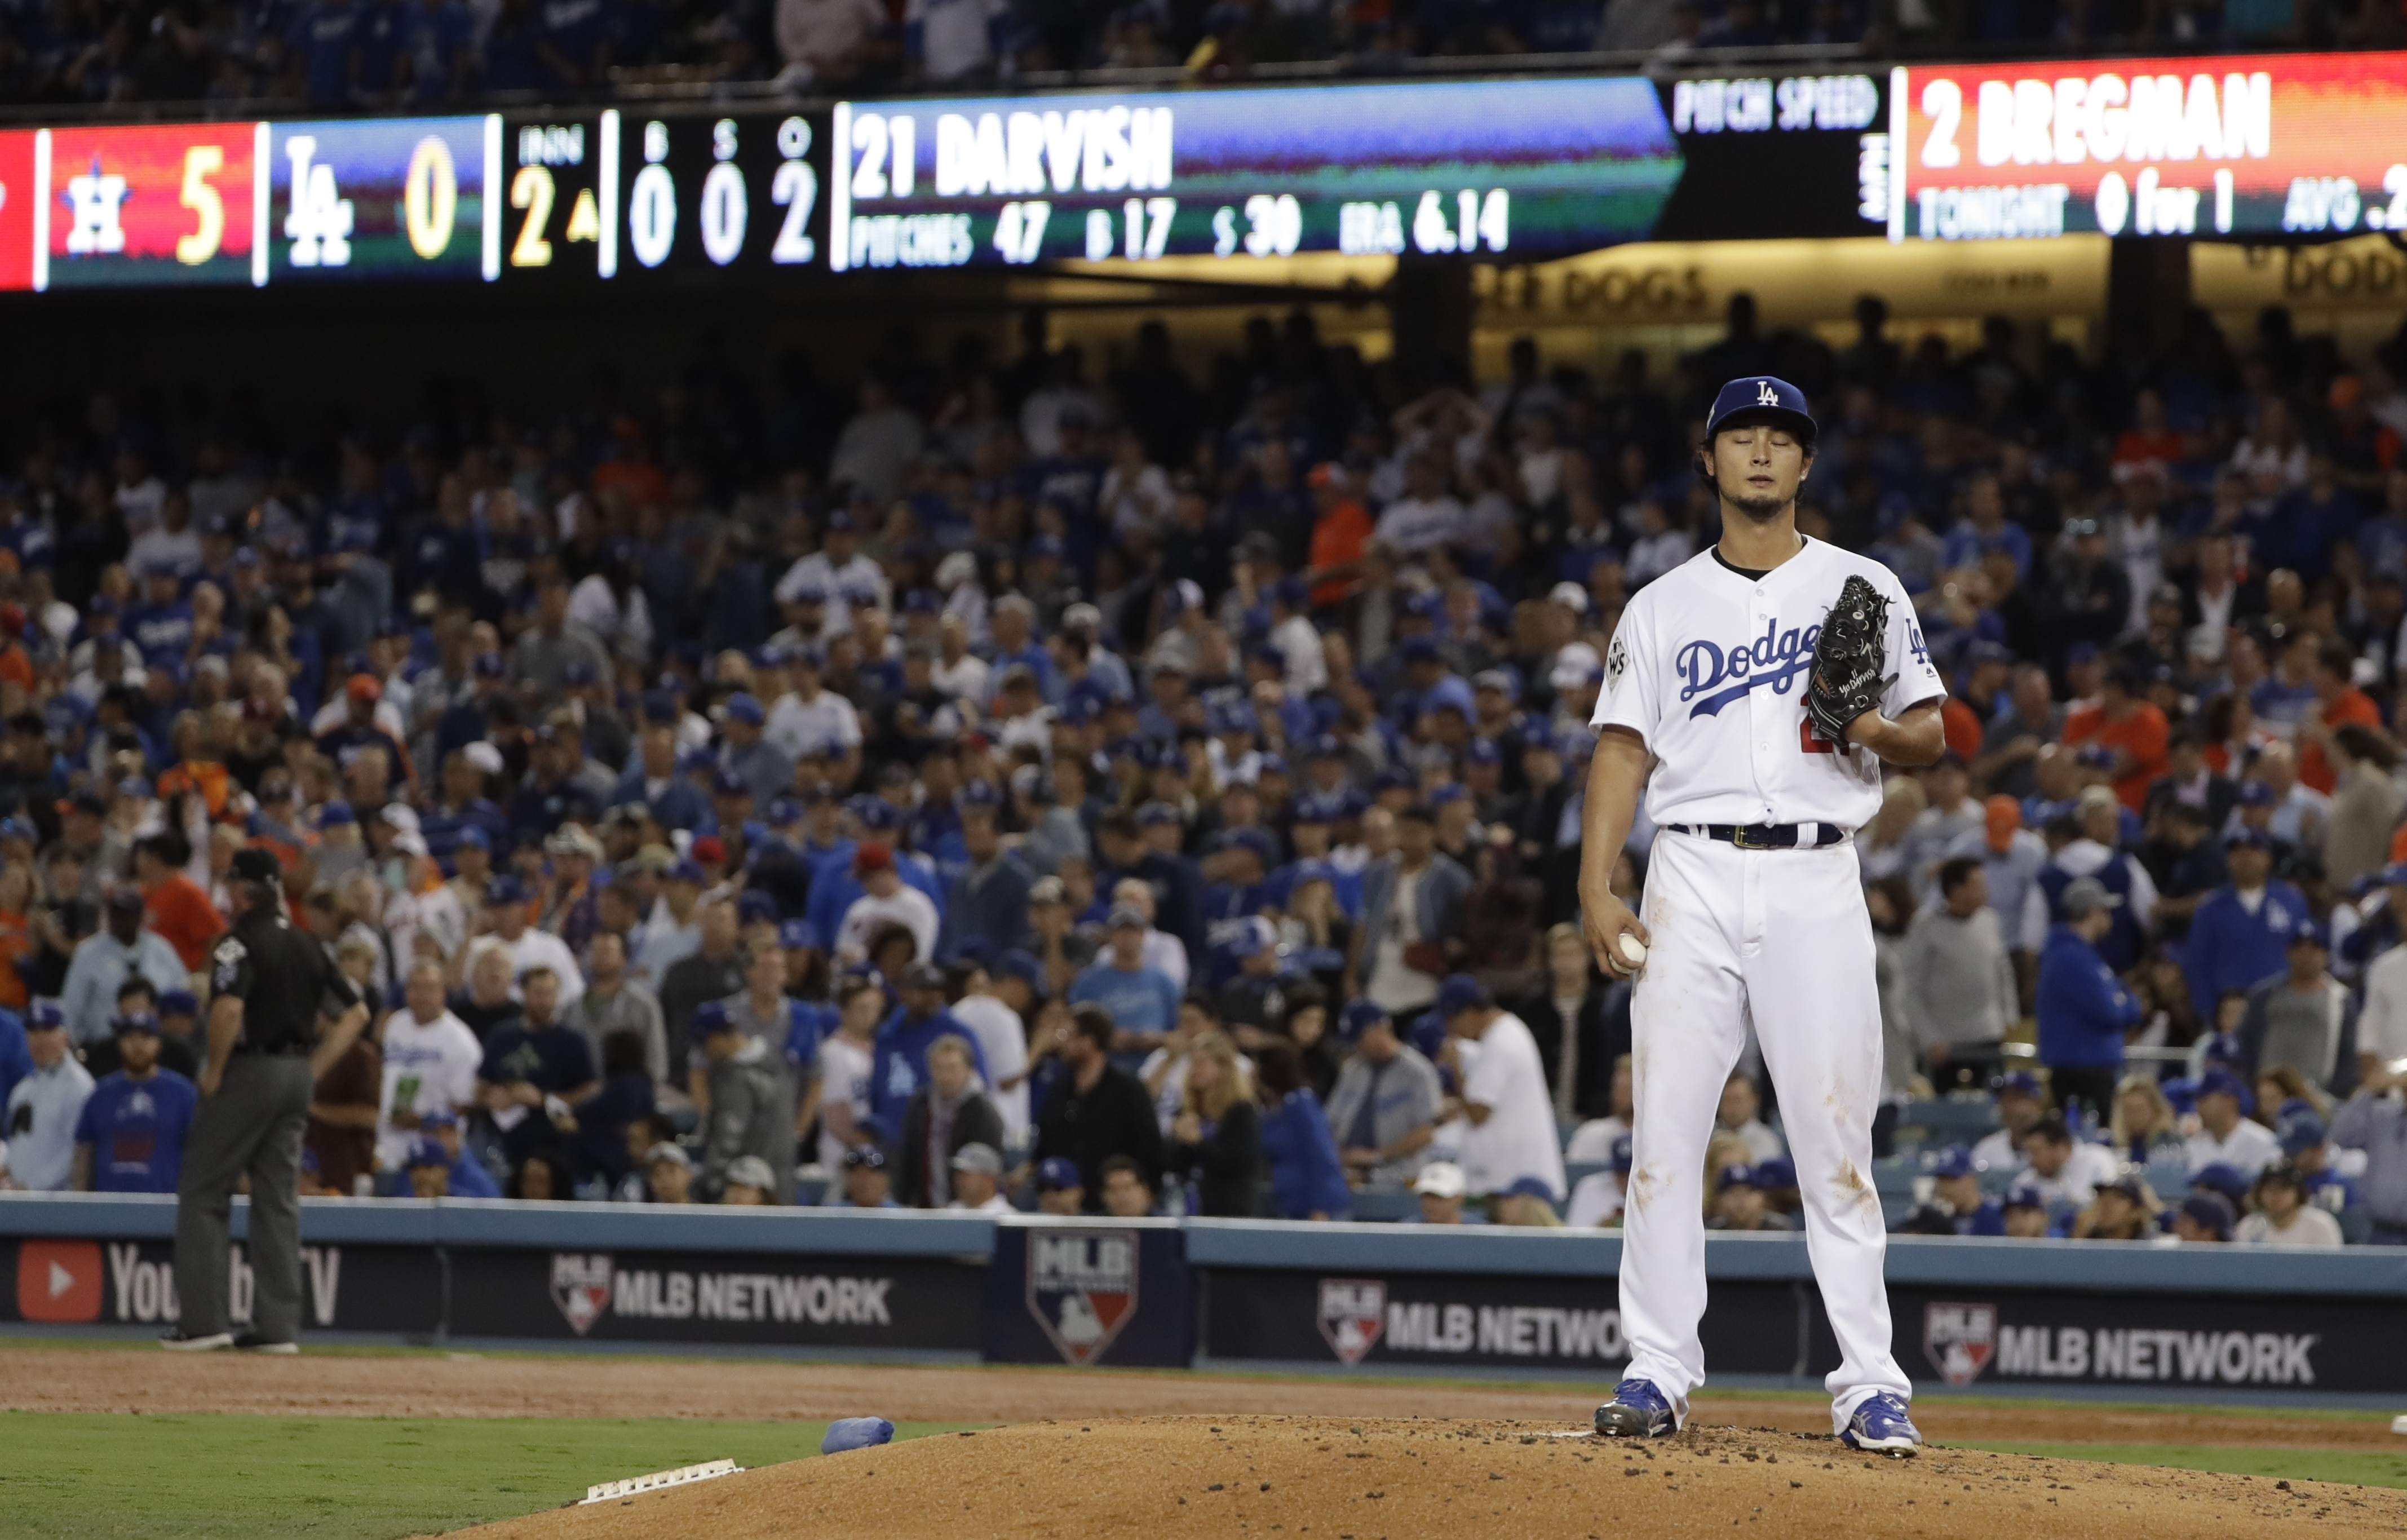 Los Angeles Dodgers' Yu Darvish reacts after giving up a two-run home run to Houston Astros' George Springer during the second inning of Game 7 of the World Series Wednesday, Nov. 1, 2017, in Los Angeles. (AP Photo/Matt Slocum)